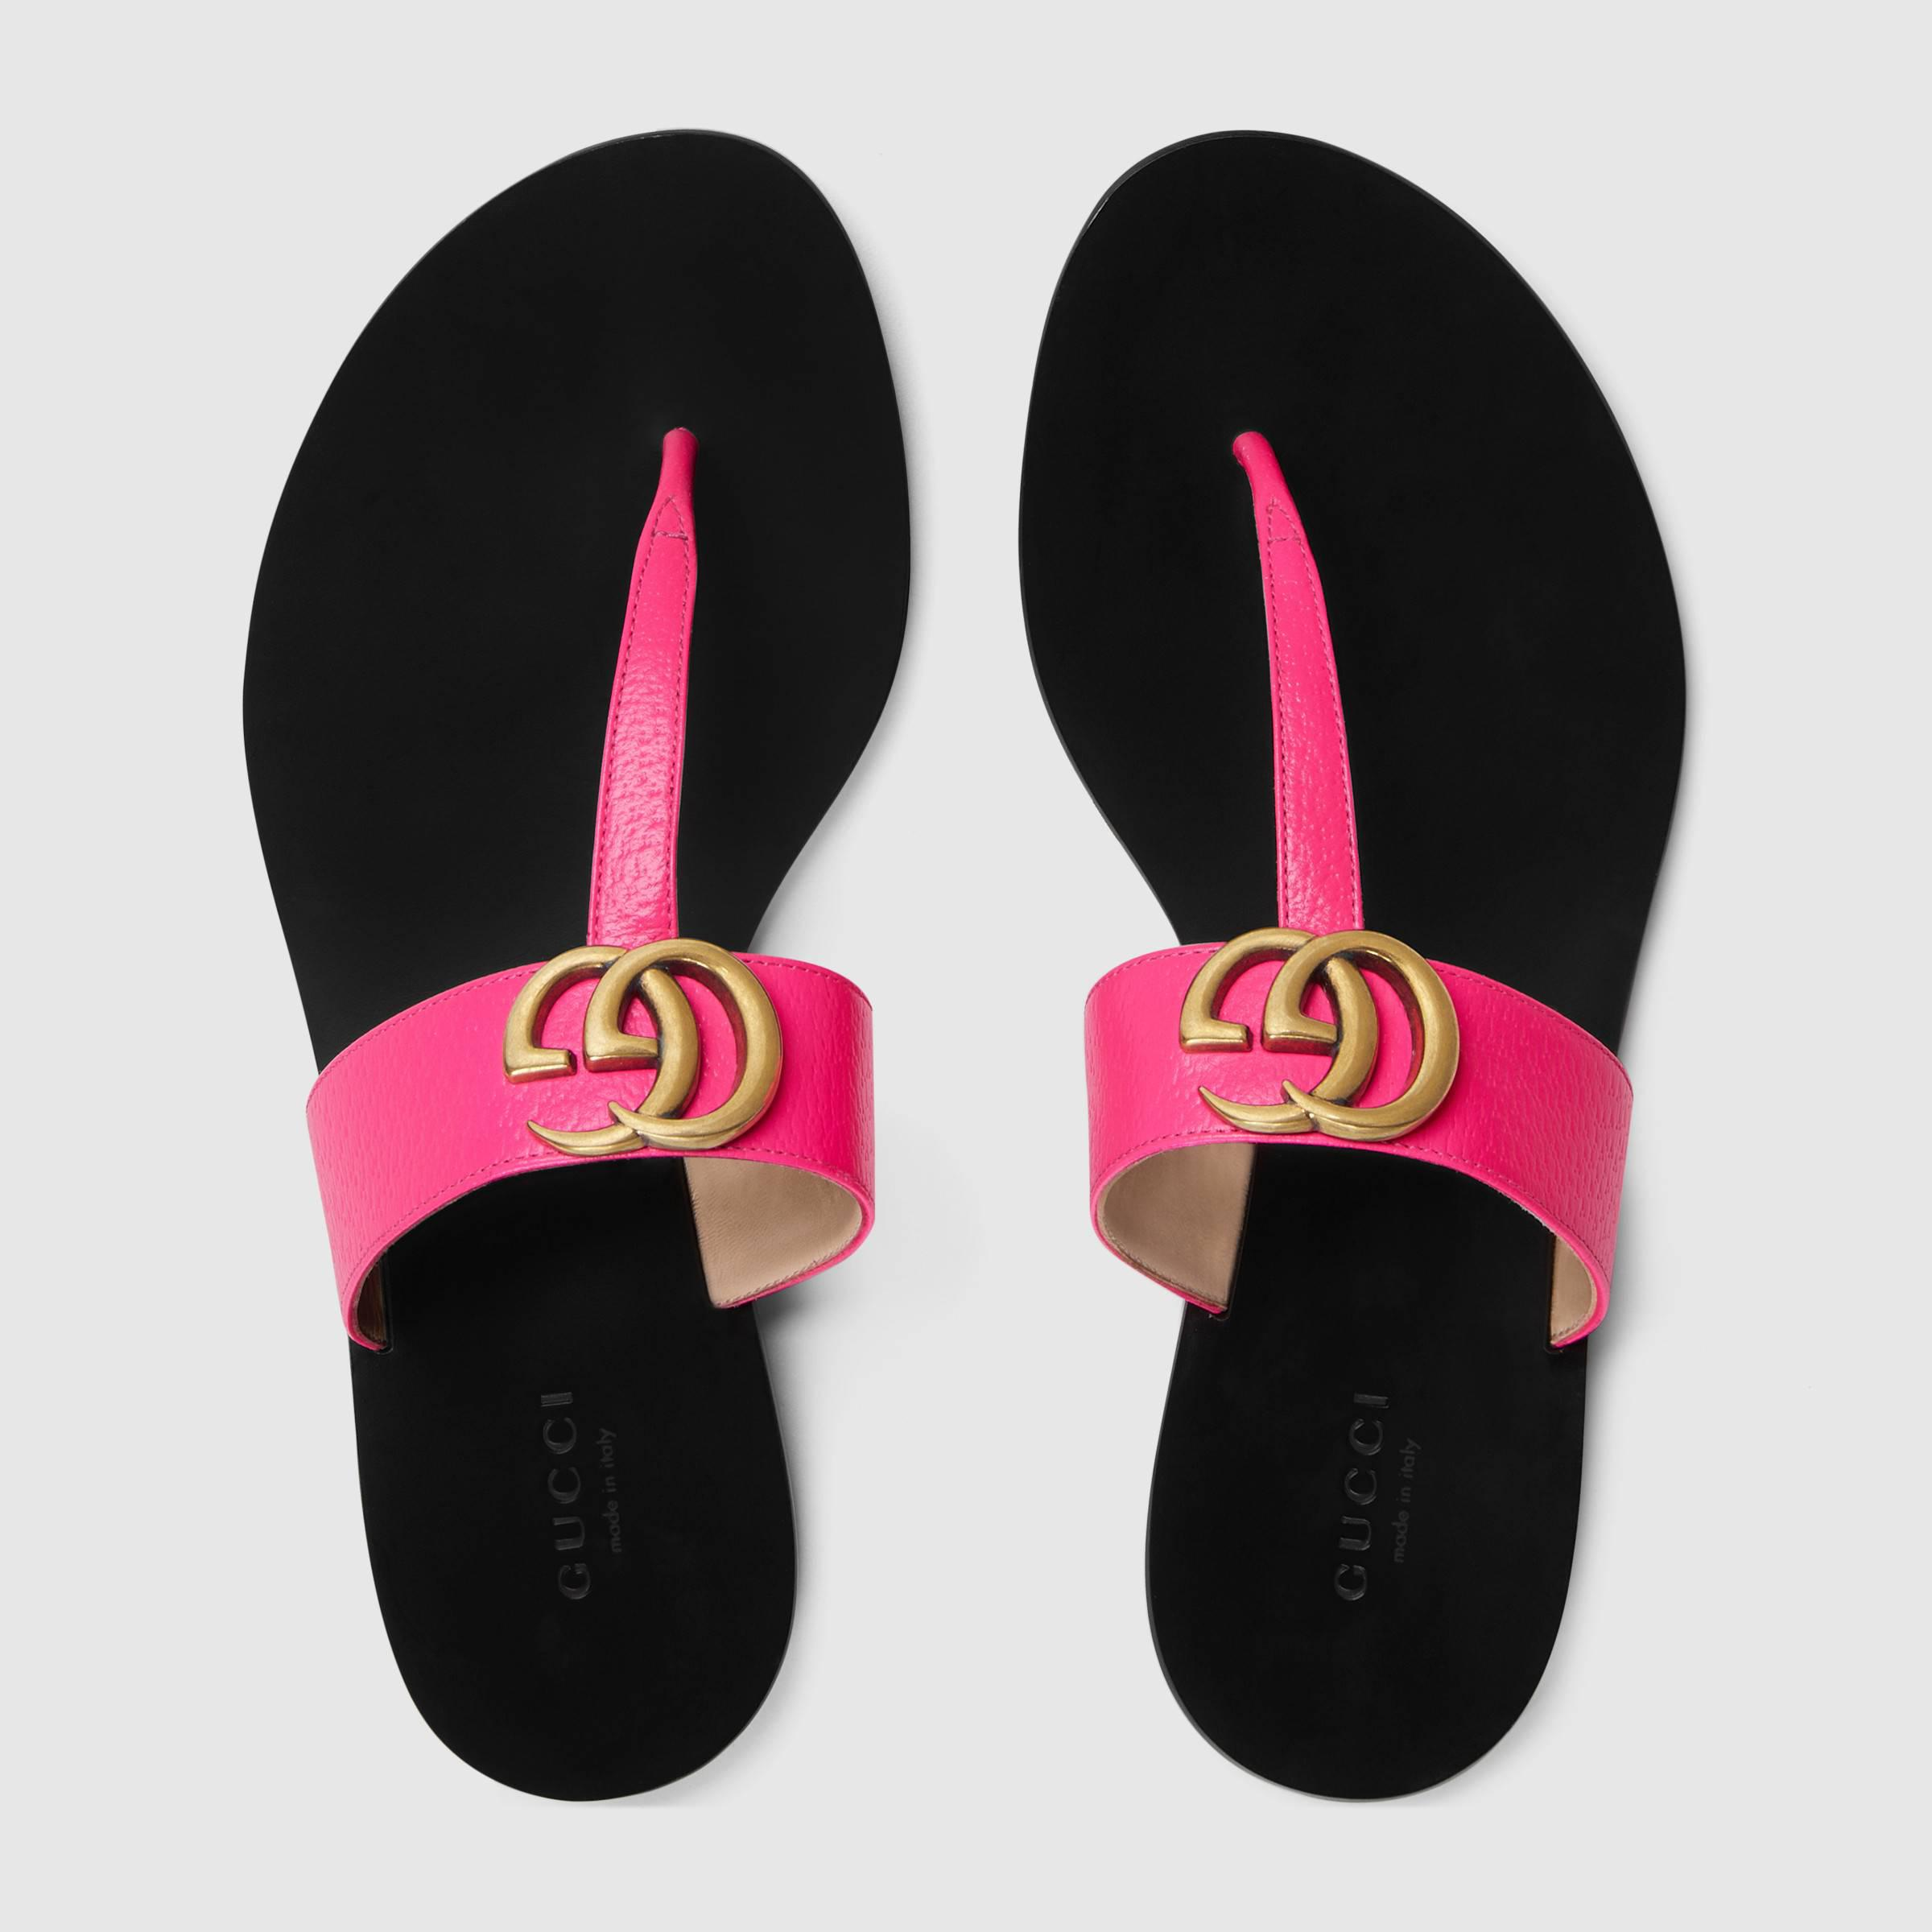 5ee7c08640e97 Gucci - Multicolor Leather Thong Sandal With Double G - Lyst. View  fullscreen